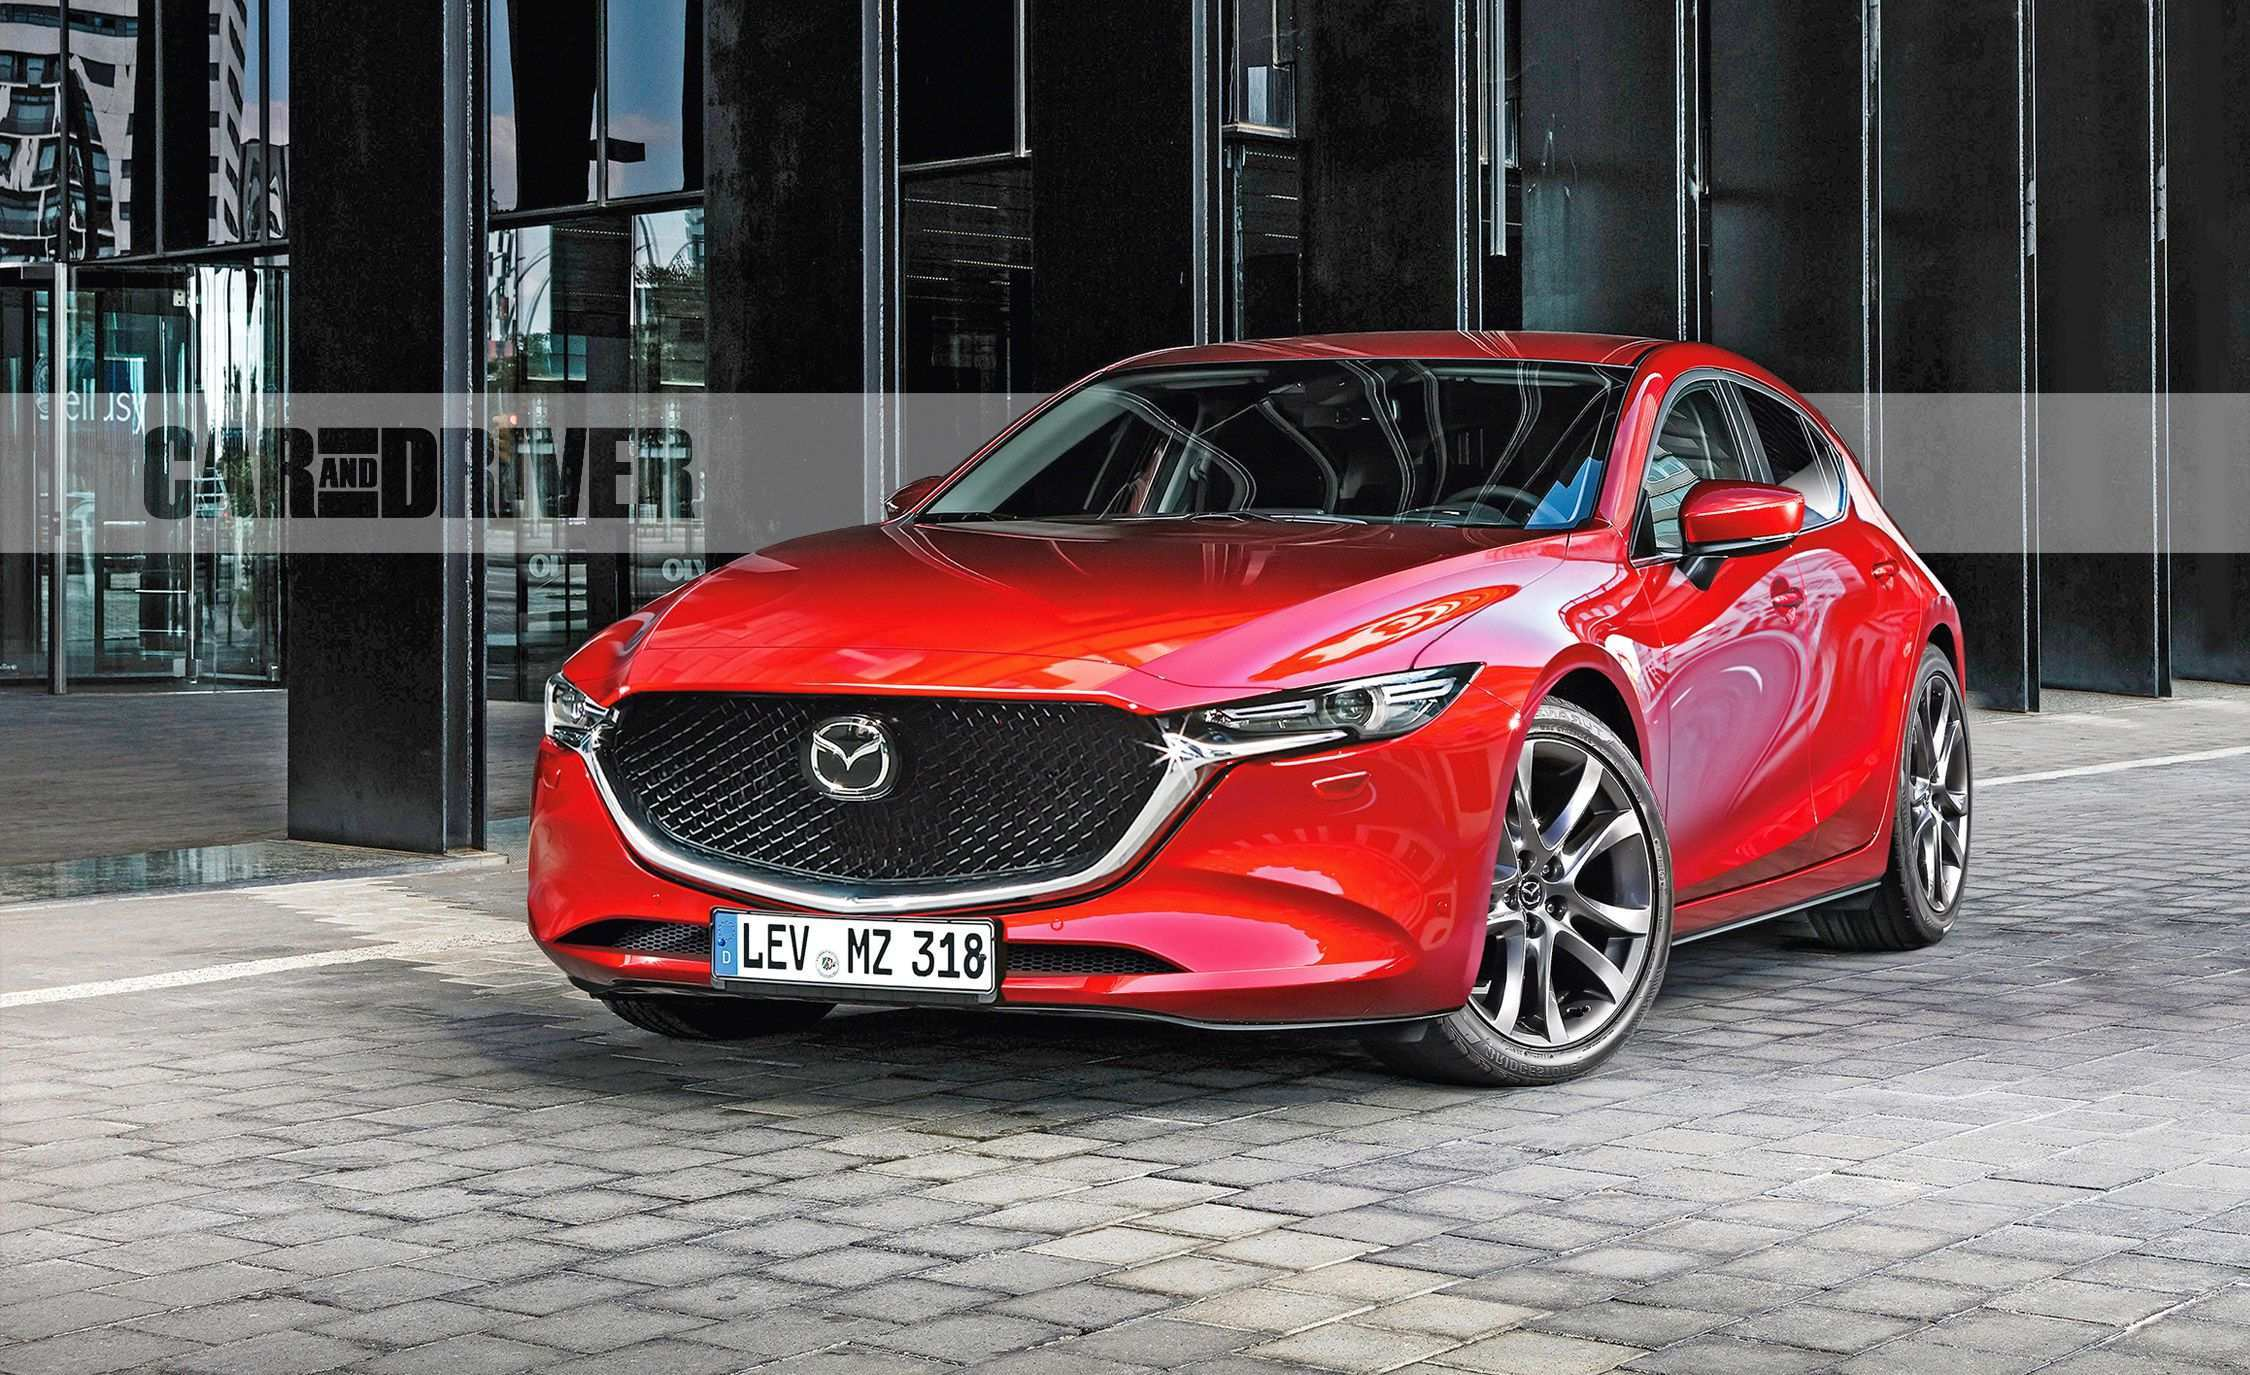 26 Best Review 2019 Mazda 3 Turbo Spy Shoot with 2019 Mazda 3 Turbo